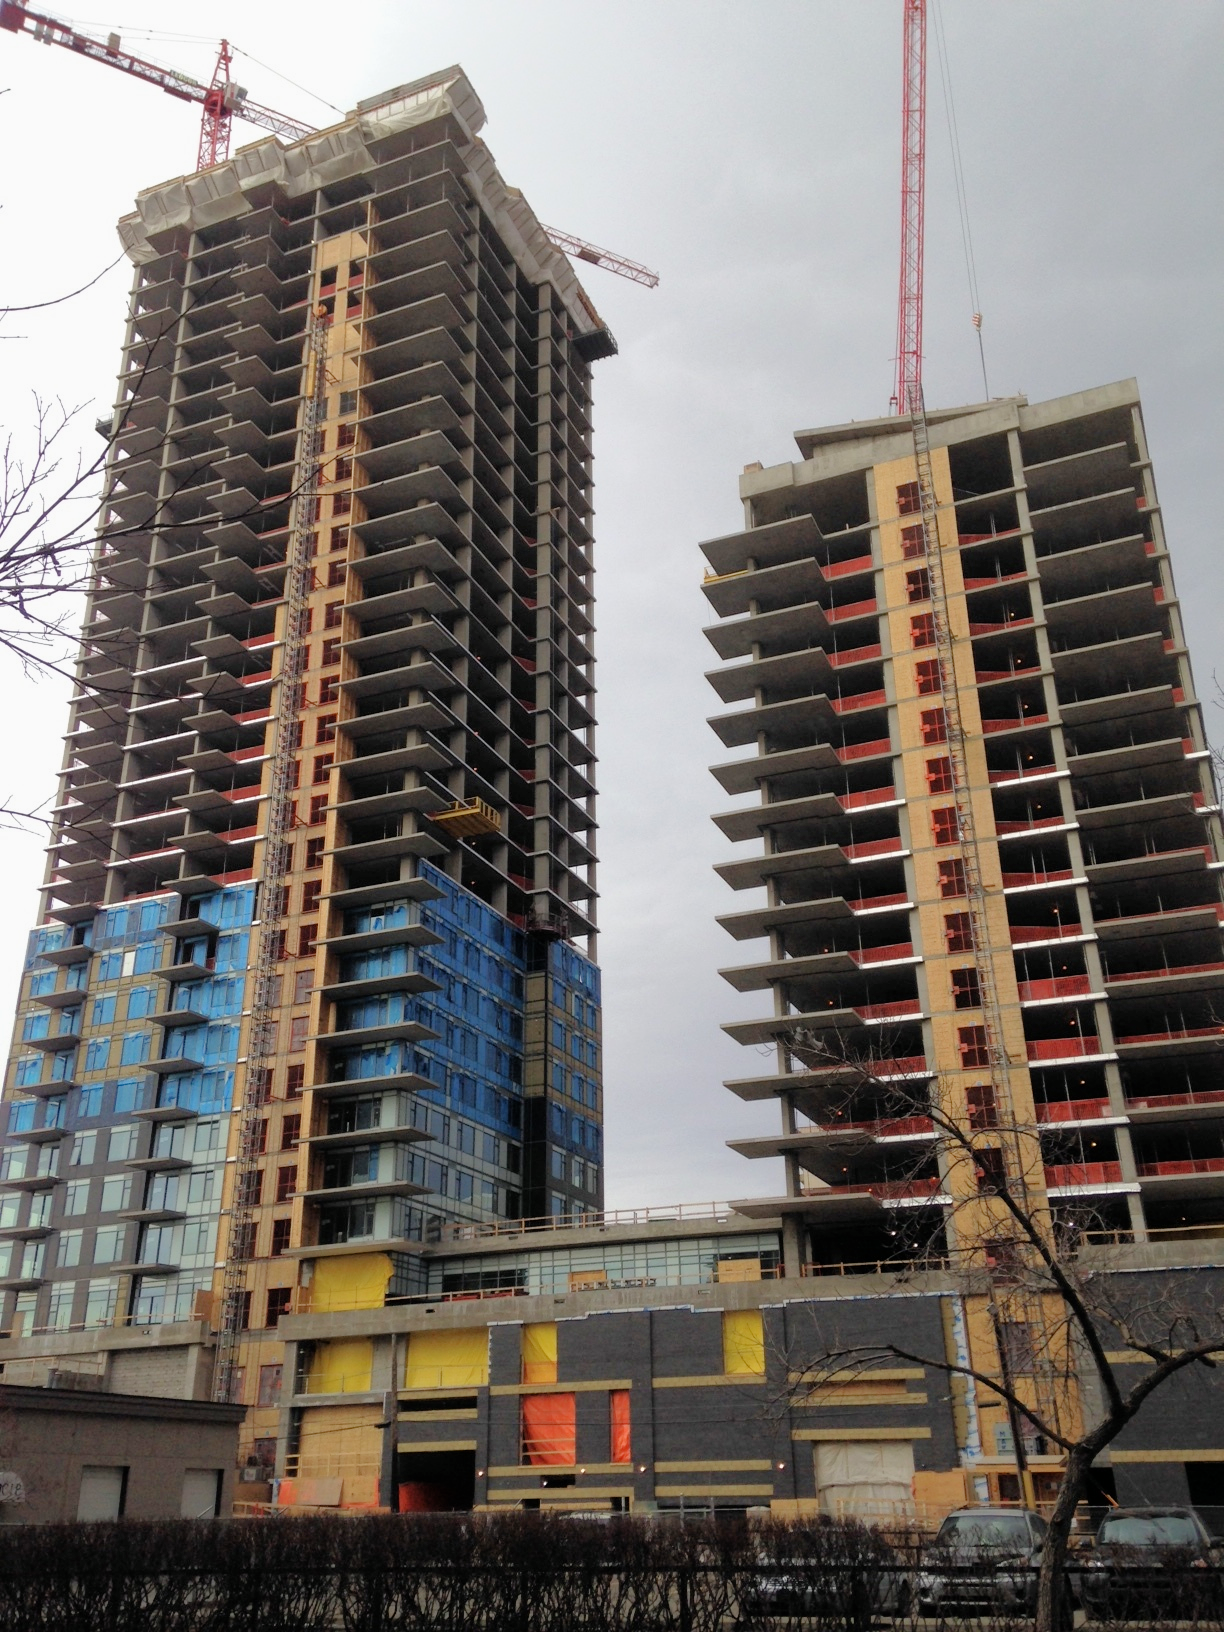 WAM's two unnamed rental apartment towers are rising up from where the luxury Astoria condo which was just capped off at ground level when it went bankrupt.